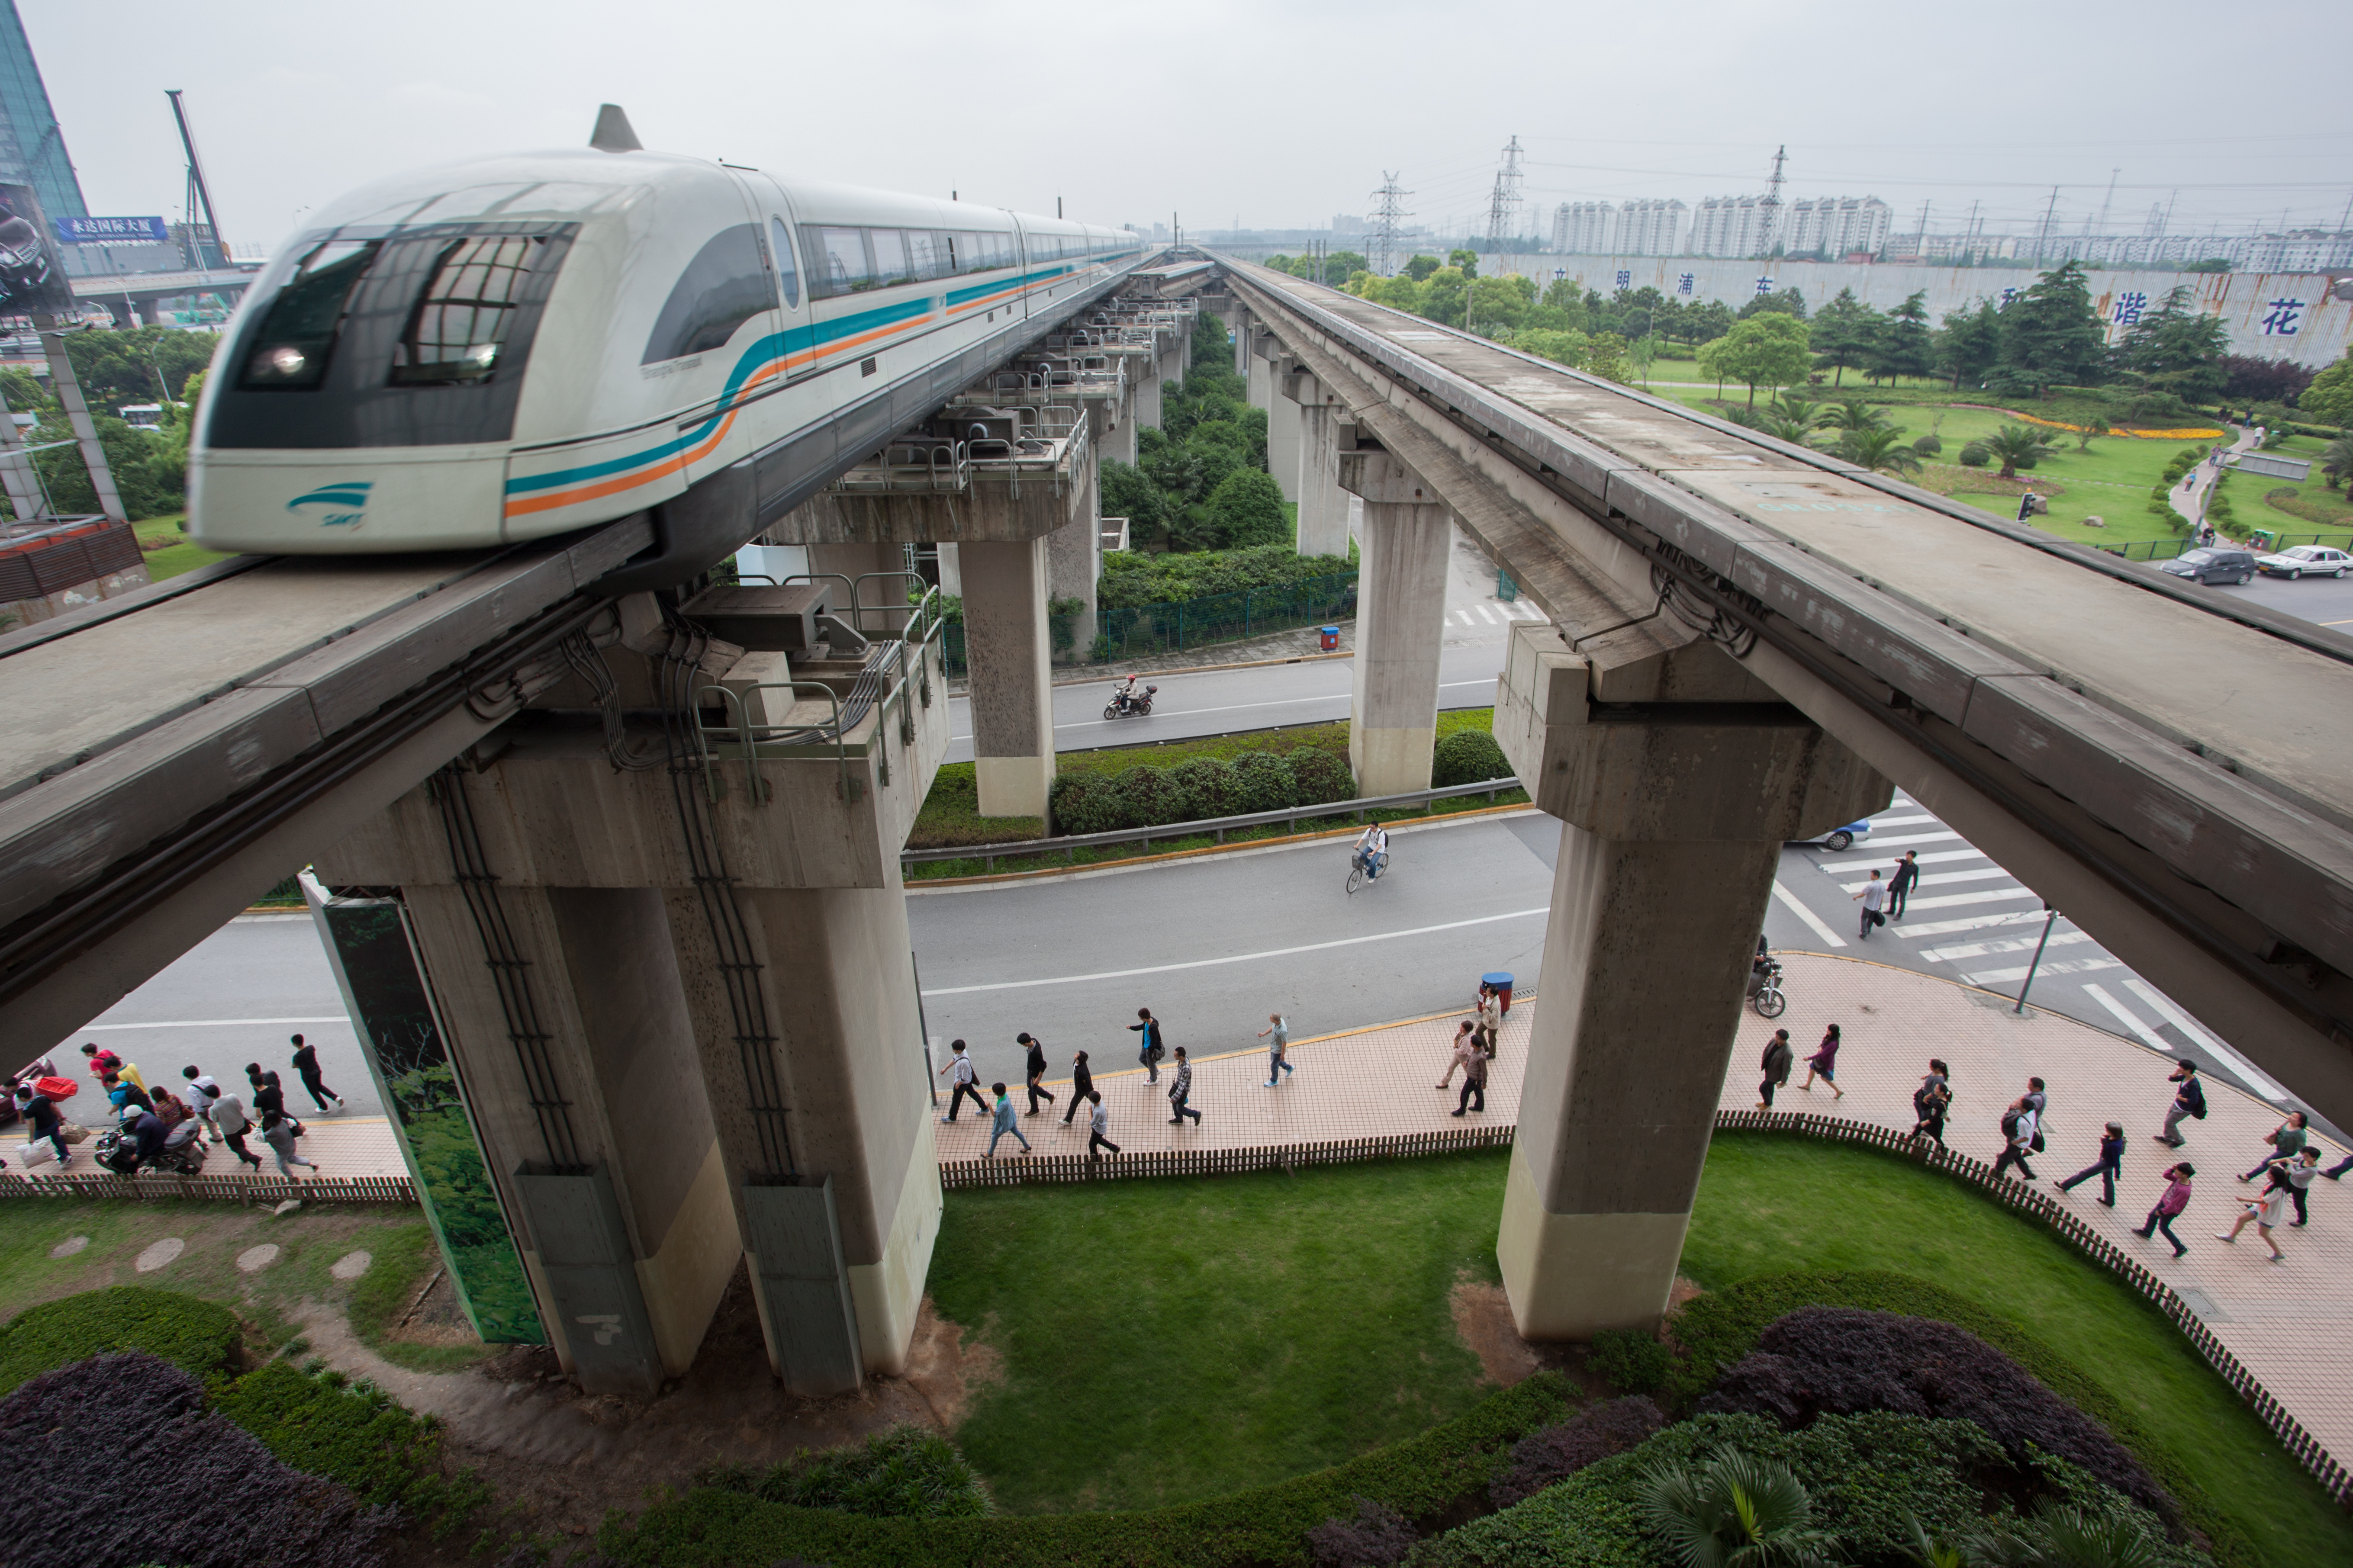 Shanghai Maglev Train connecting the Shanghai Pudong International Airport with the city2